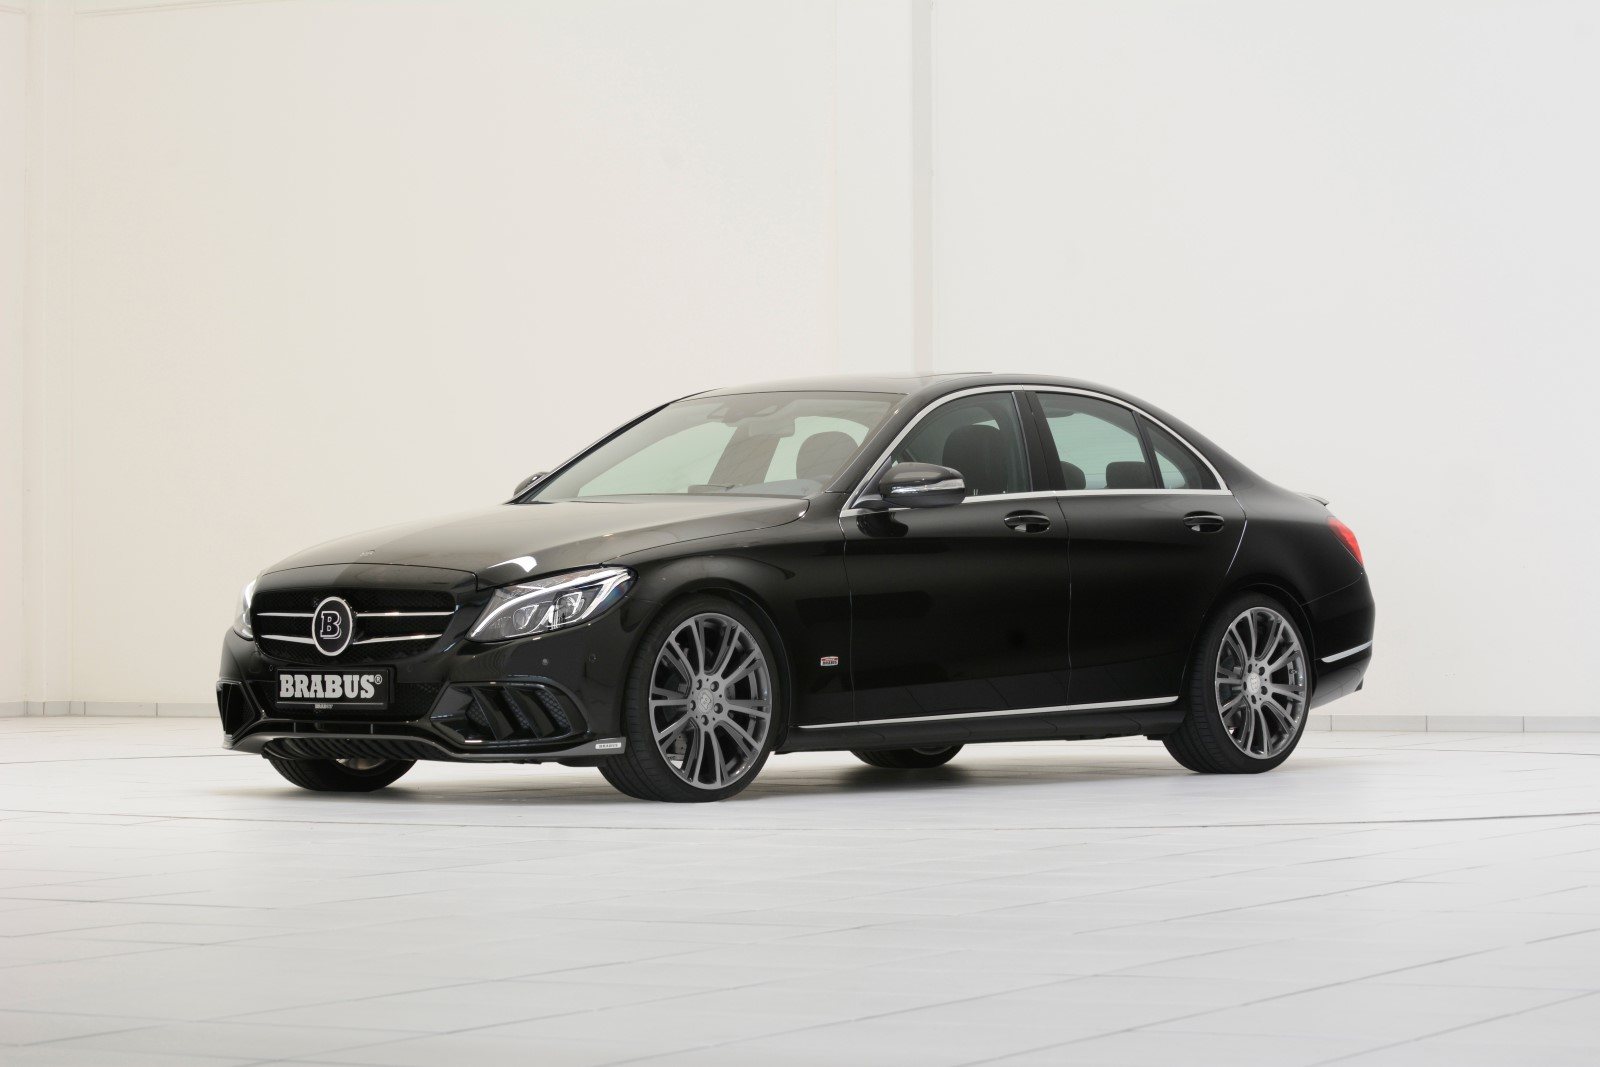 Brabus reveals tuning package for Mercedes C-Class | Evo